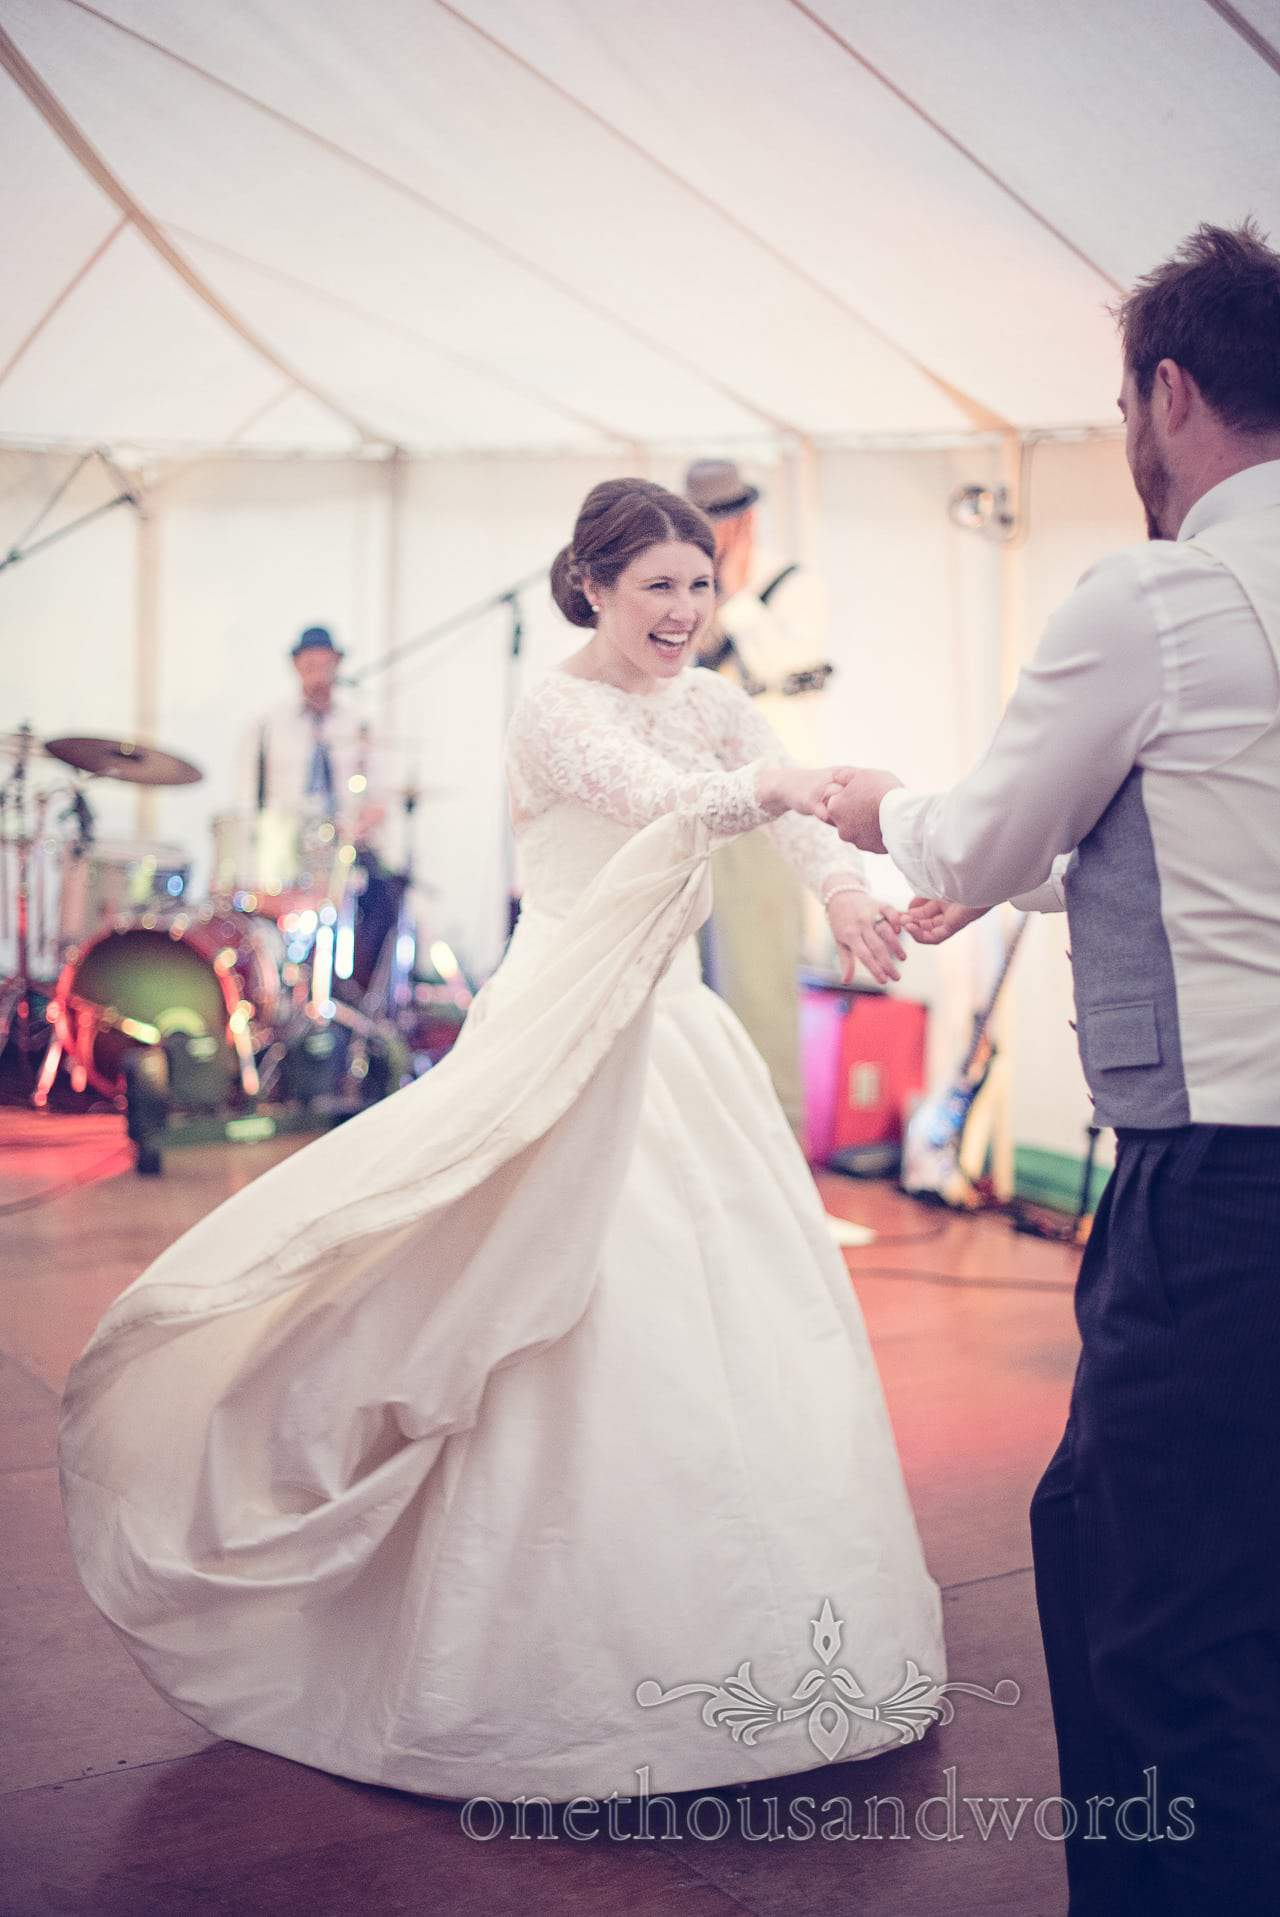 First dance at The Priory Wareham wedding